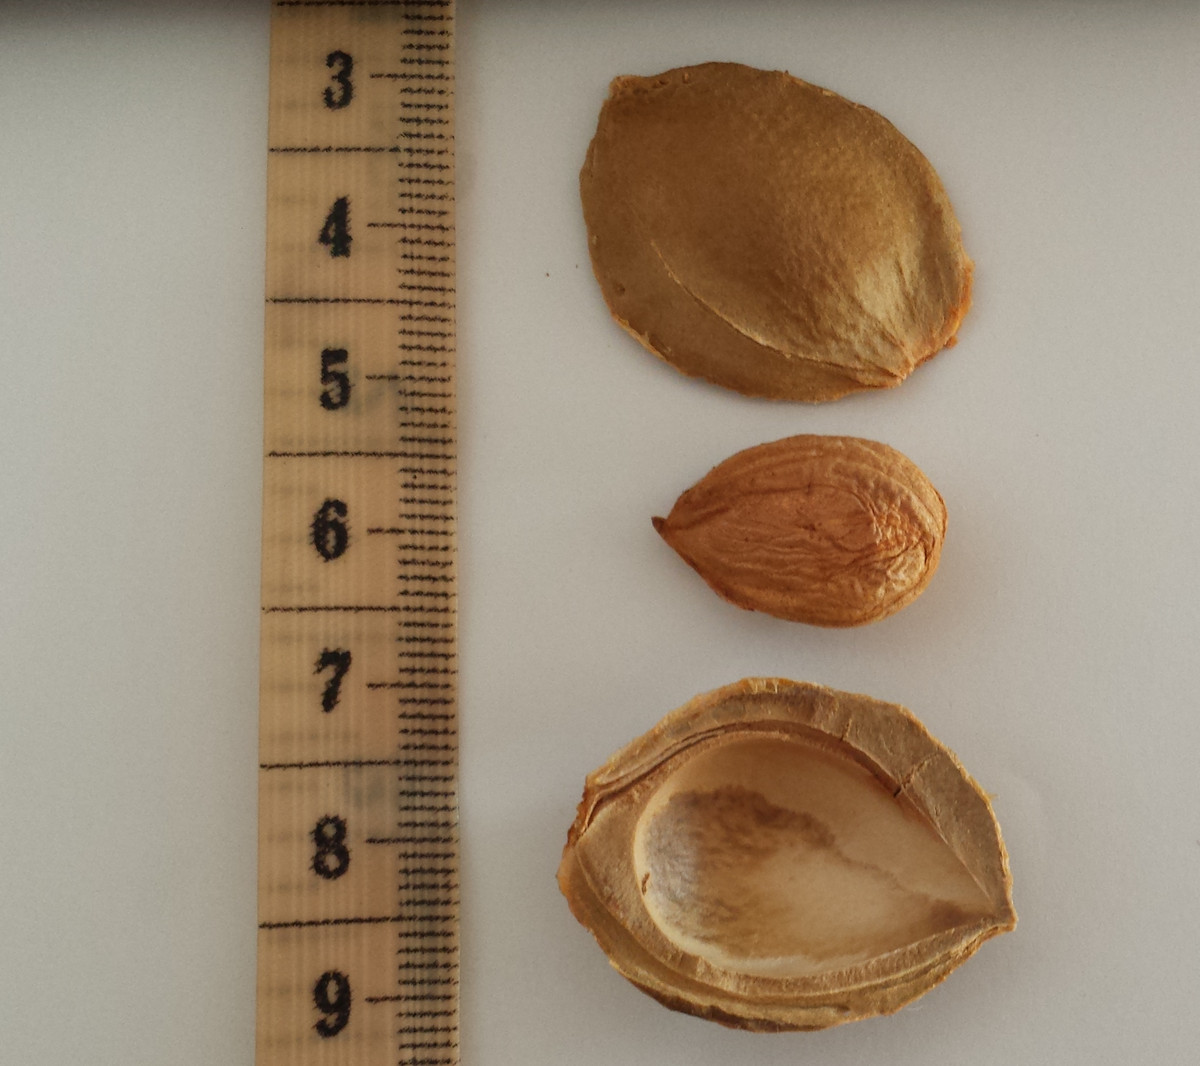 A man who took apricot kernels to beat cancer got cyanide